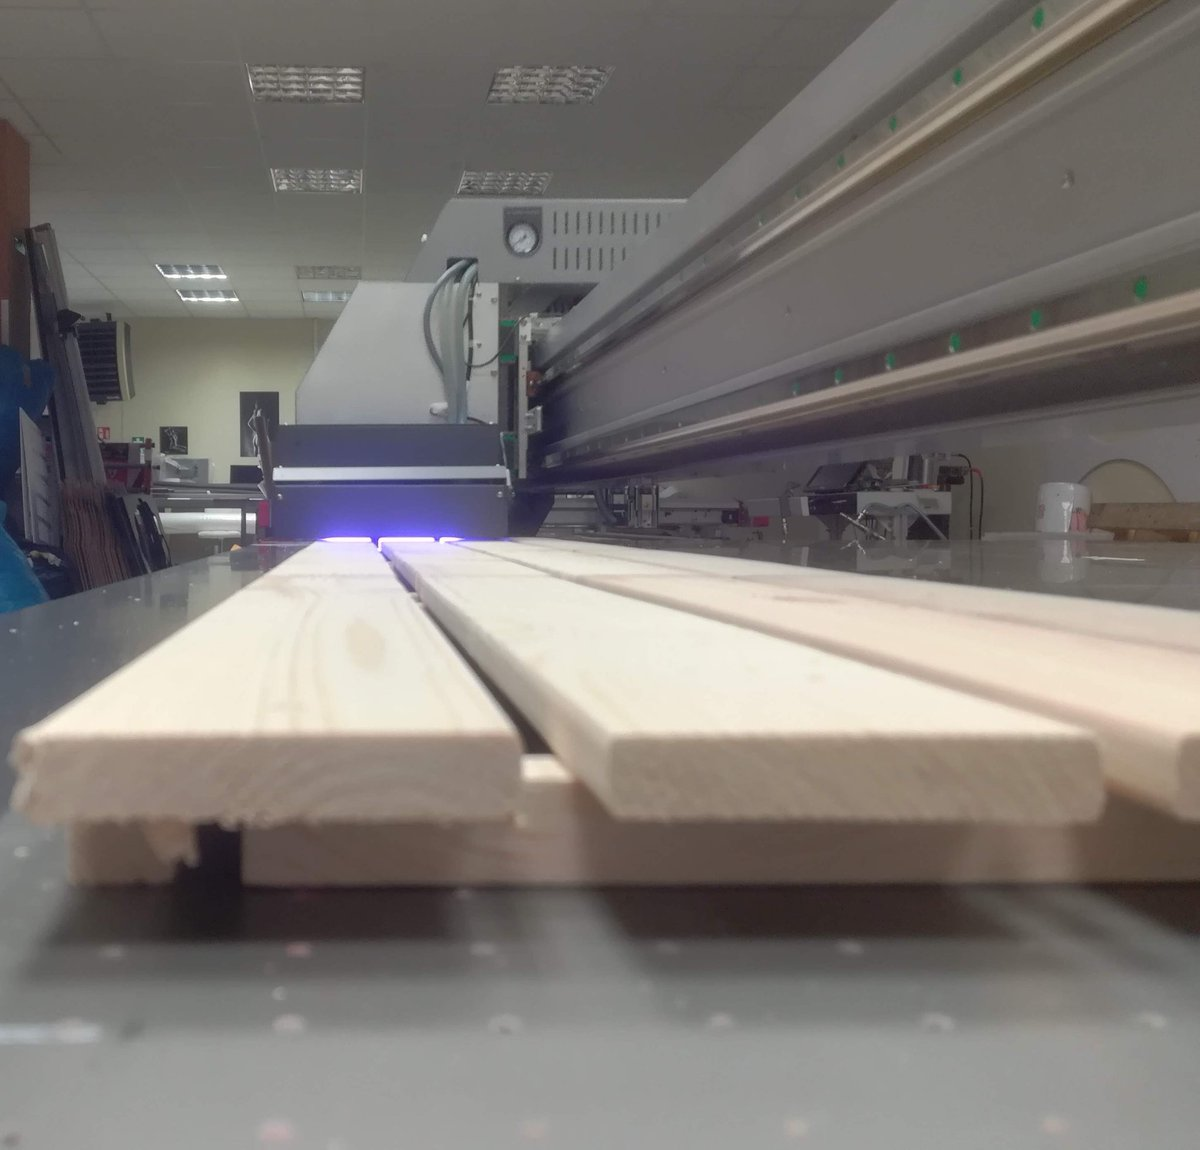 UVprinting on wood,glass,leather, ceramic etc Wood can also